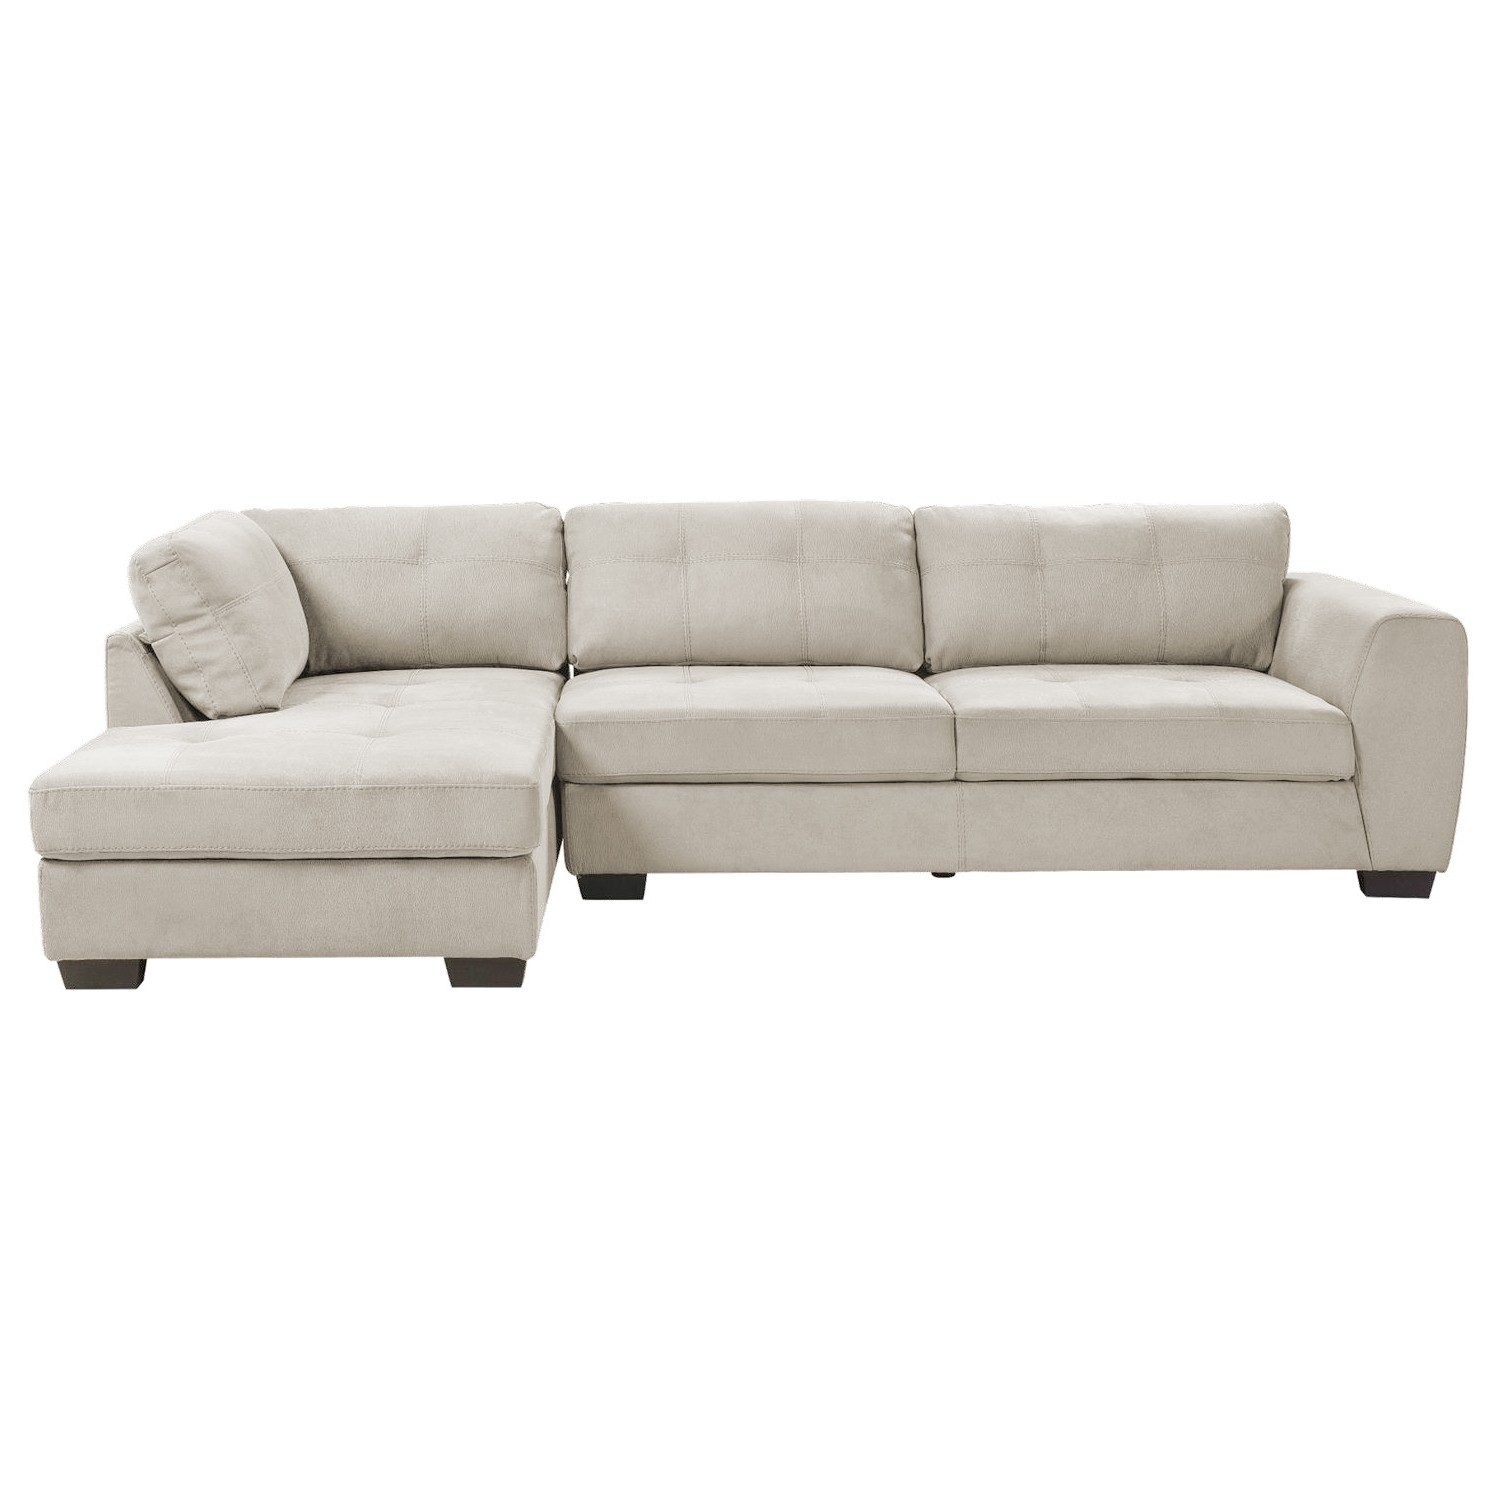 Charlie Fabric Corner Sofa, 2 Seater with Left Hand Facing Chaise, Light Grey